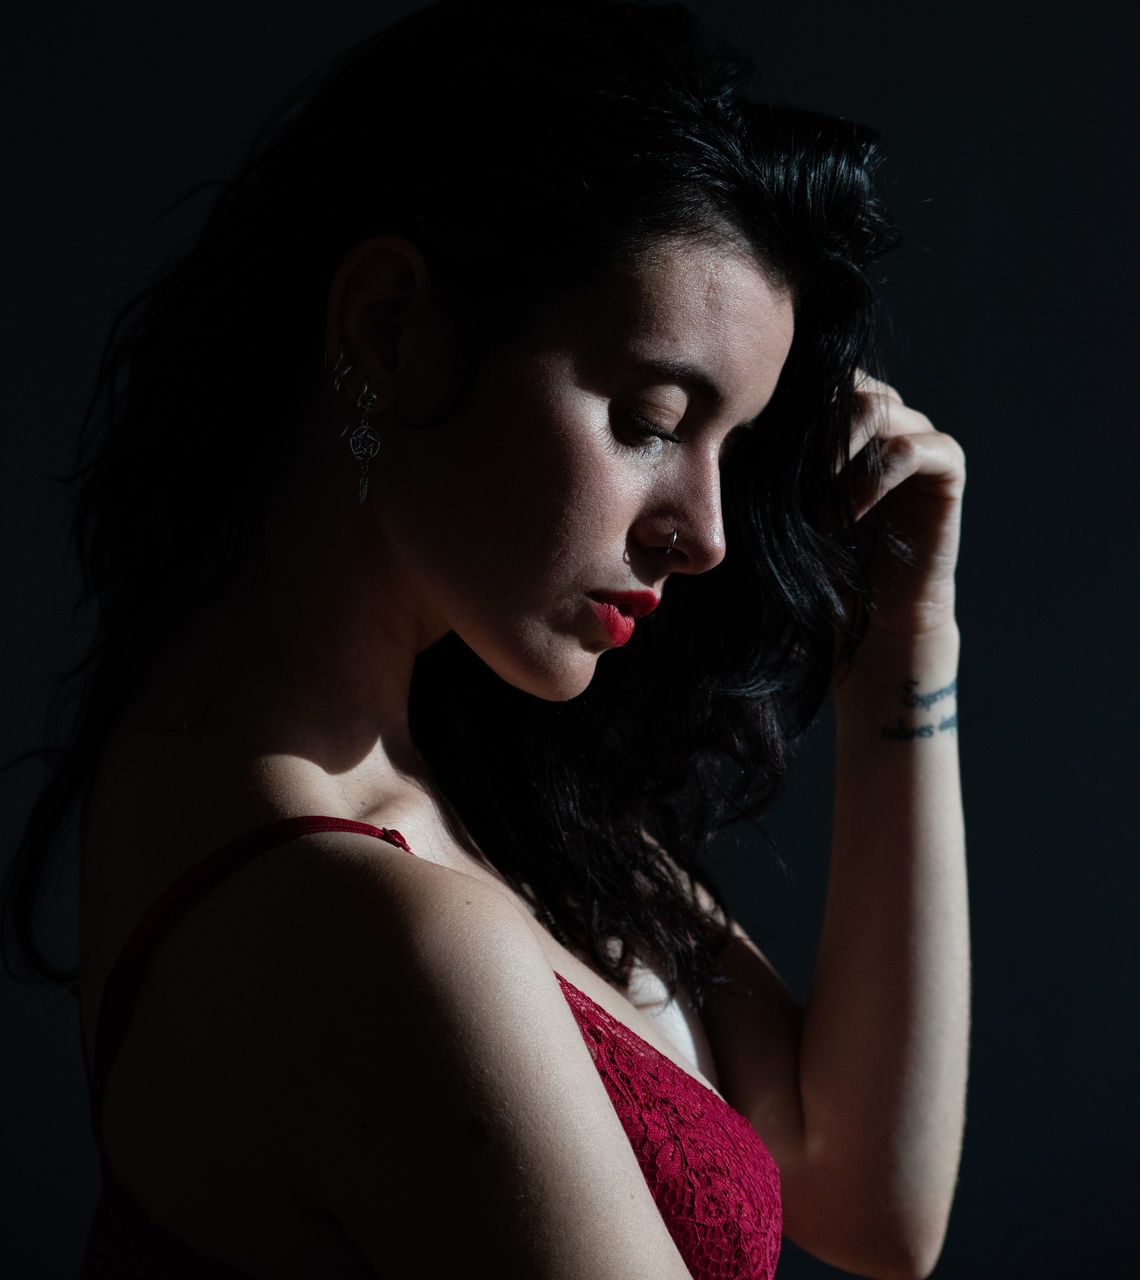 one person, young adult, studio shot, women, young women, indoors, beautiful woman, looking, beauty, headshot, black background, portrait, red, contemplation, make-up, lifestyles, lipstick, hair, looking away, fashion, hairstyle